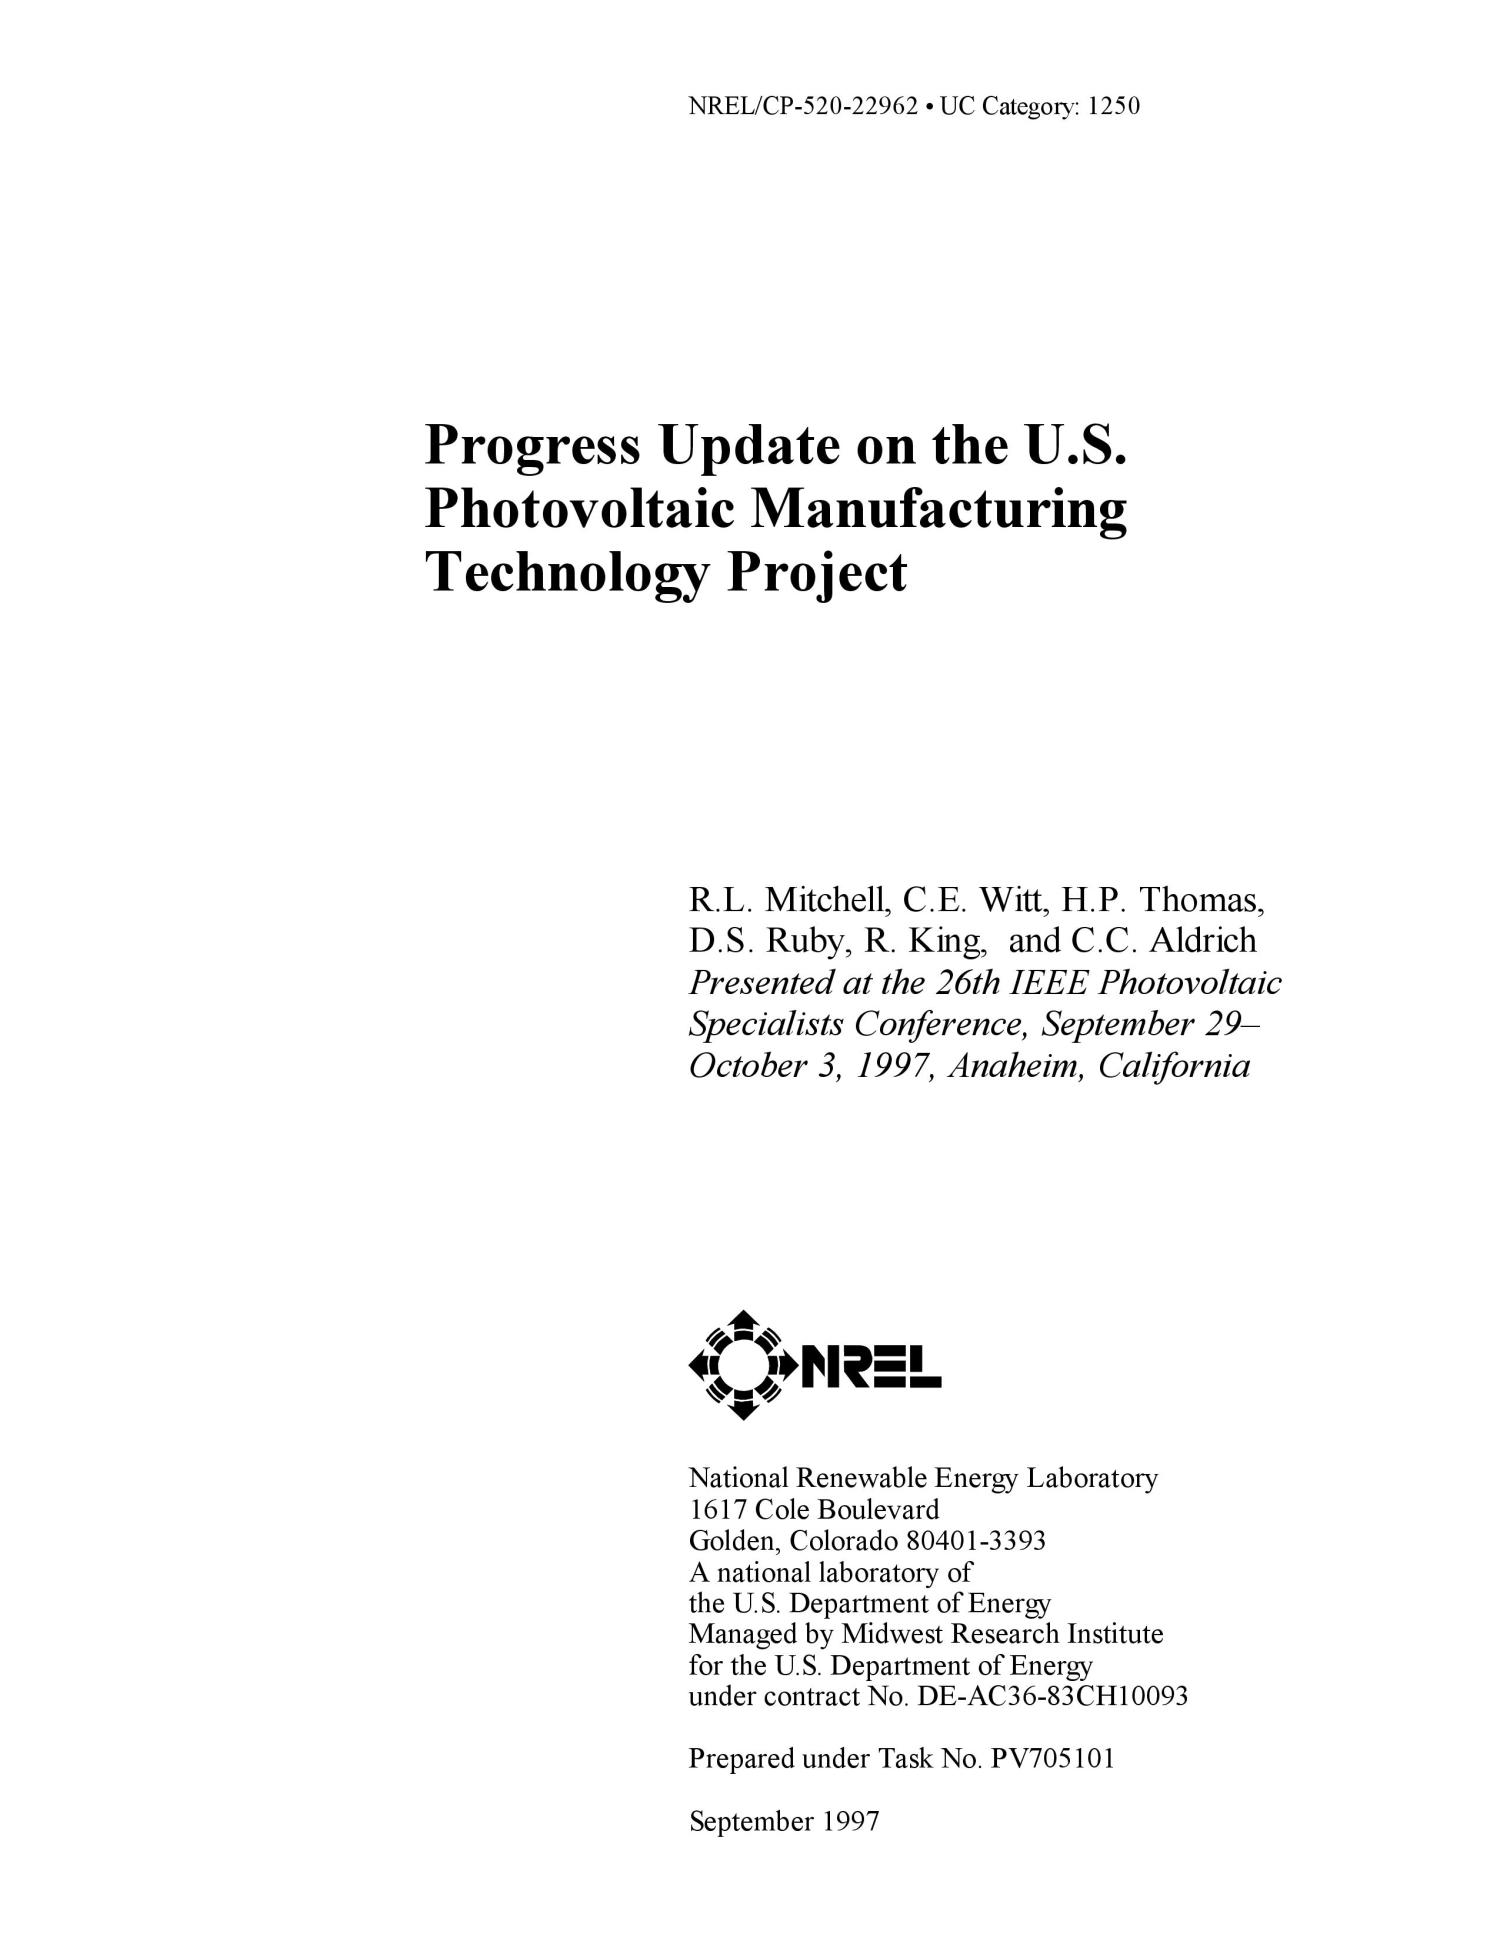 Progress update on the US photovoltaic manufacturing technology project                                                                                                      [Sequence #]: 1 of 5